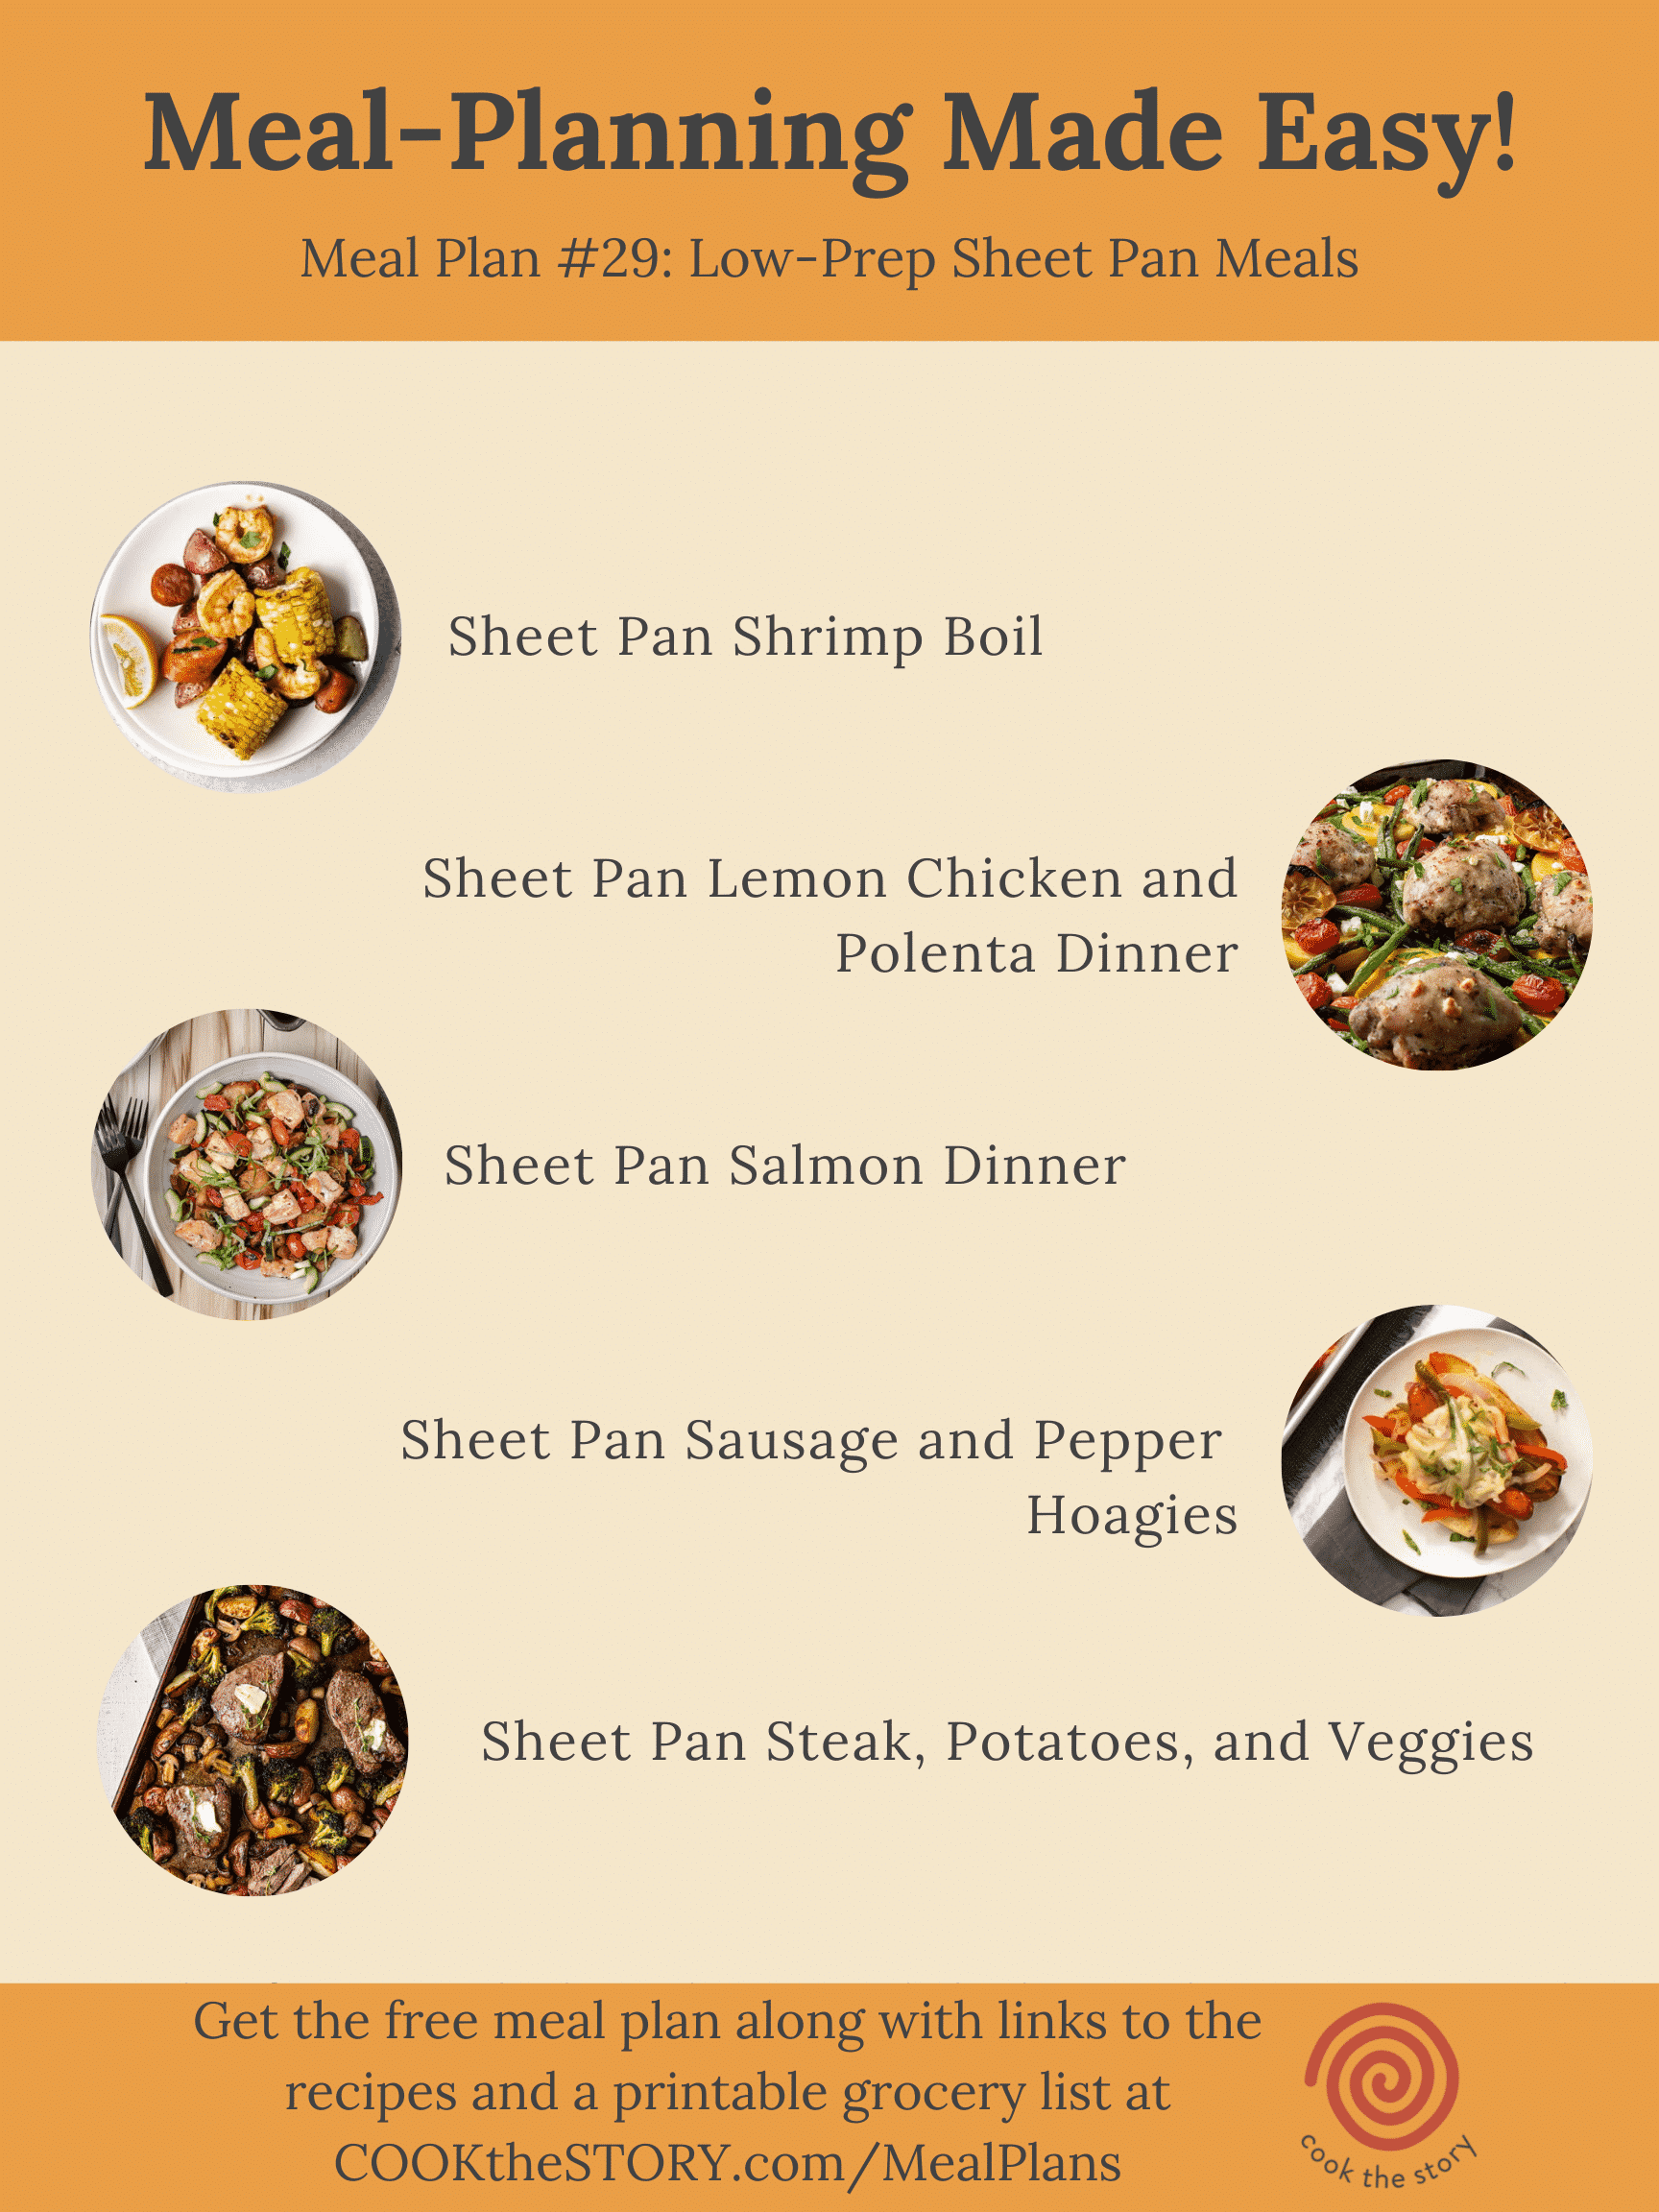 Meal Plan #29: Downsizing With One-Pan Meals